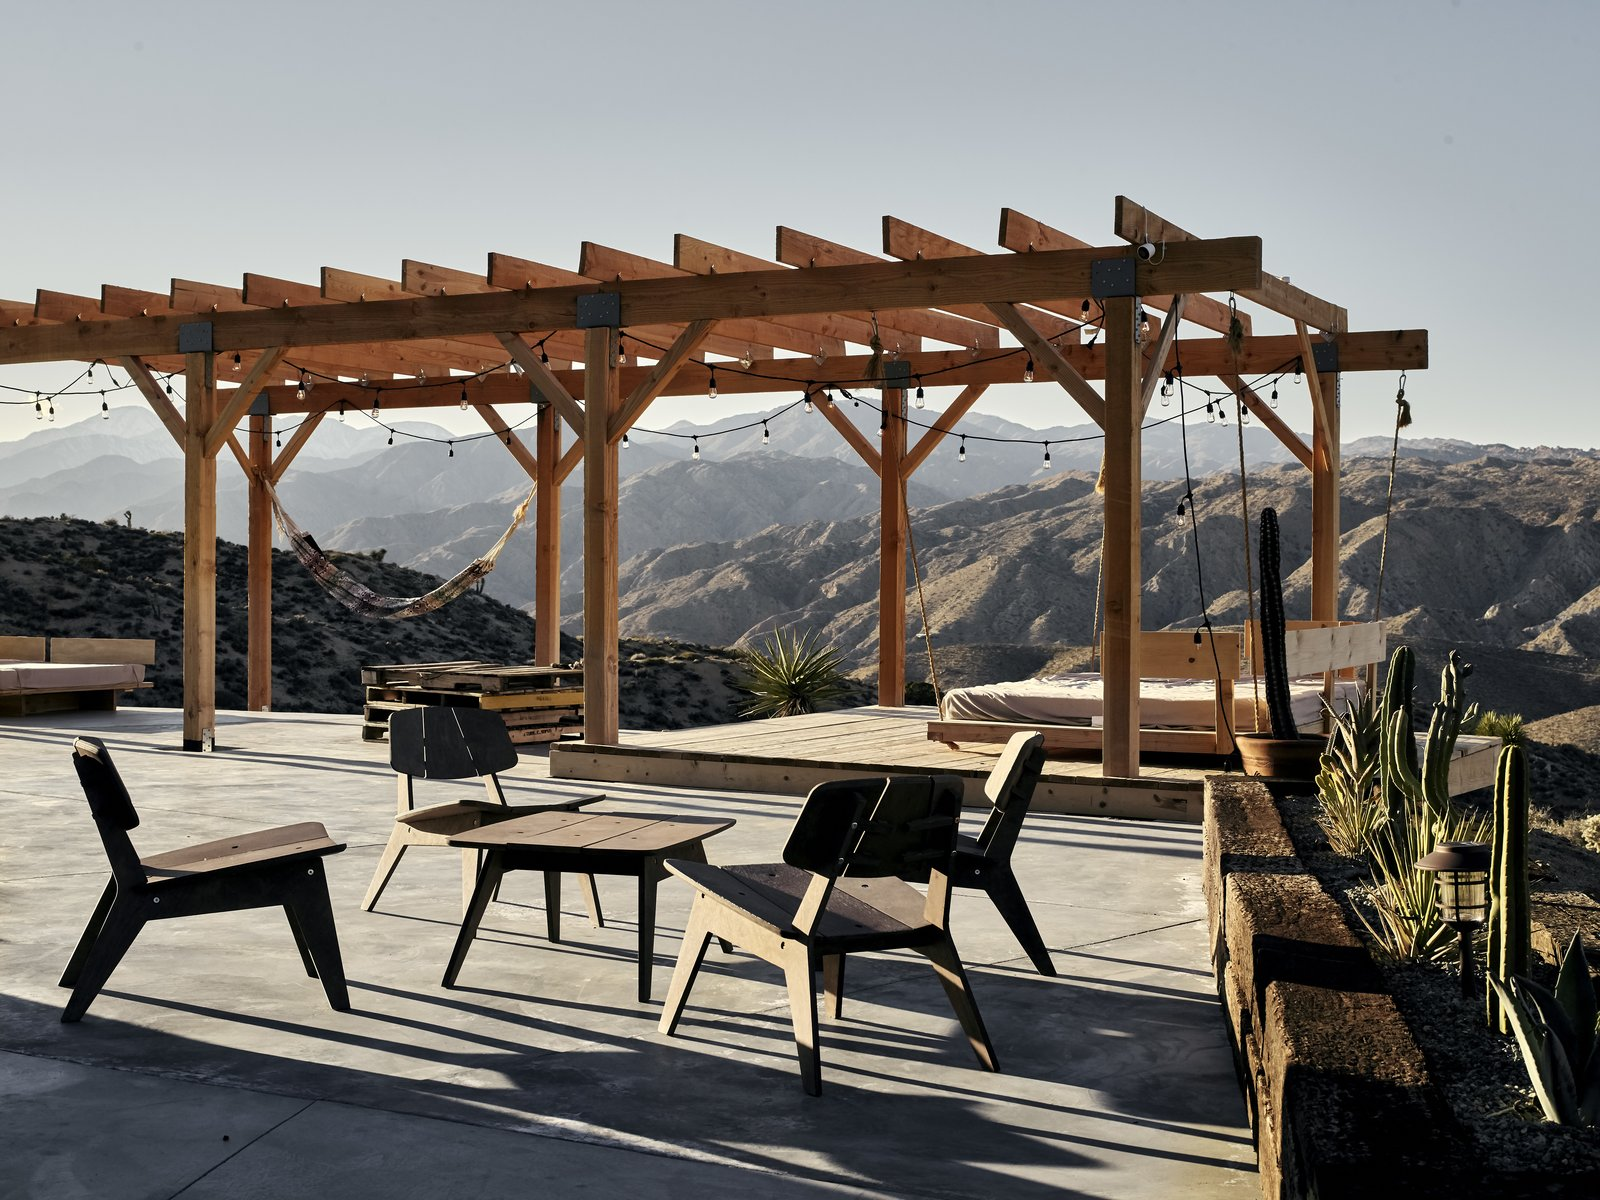 Outdoor, Large Patio, Porch, Deck, Back Yard, Shrubs, Hanging Lighting, Wood Patio, Porch, Deck, and Concrete Patio, Porch, Deck A cement slab and wood deck offer space for meals and stargazing. Sam built the furniture himself.  Photos from A Tech Entrepreneur Rehabs an Off-Grid Dome Home in Joshua Tree